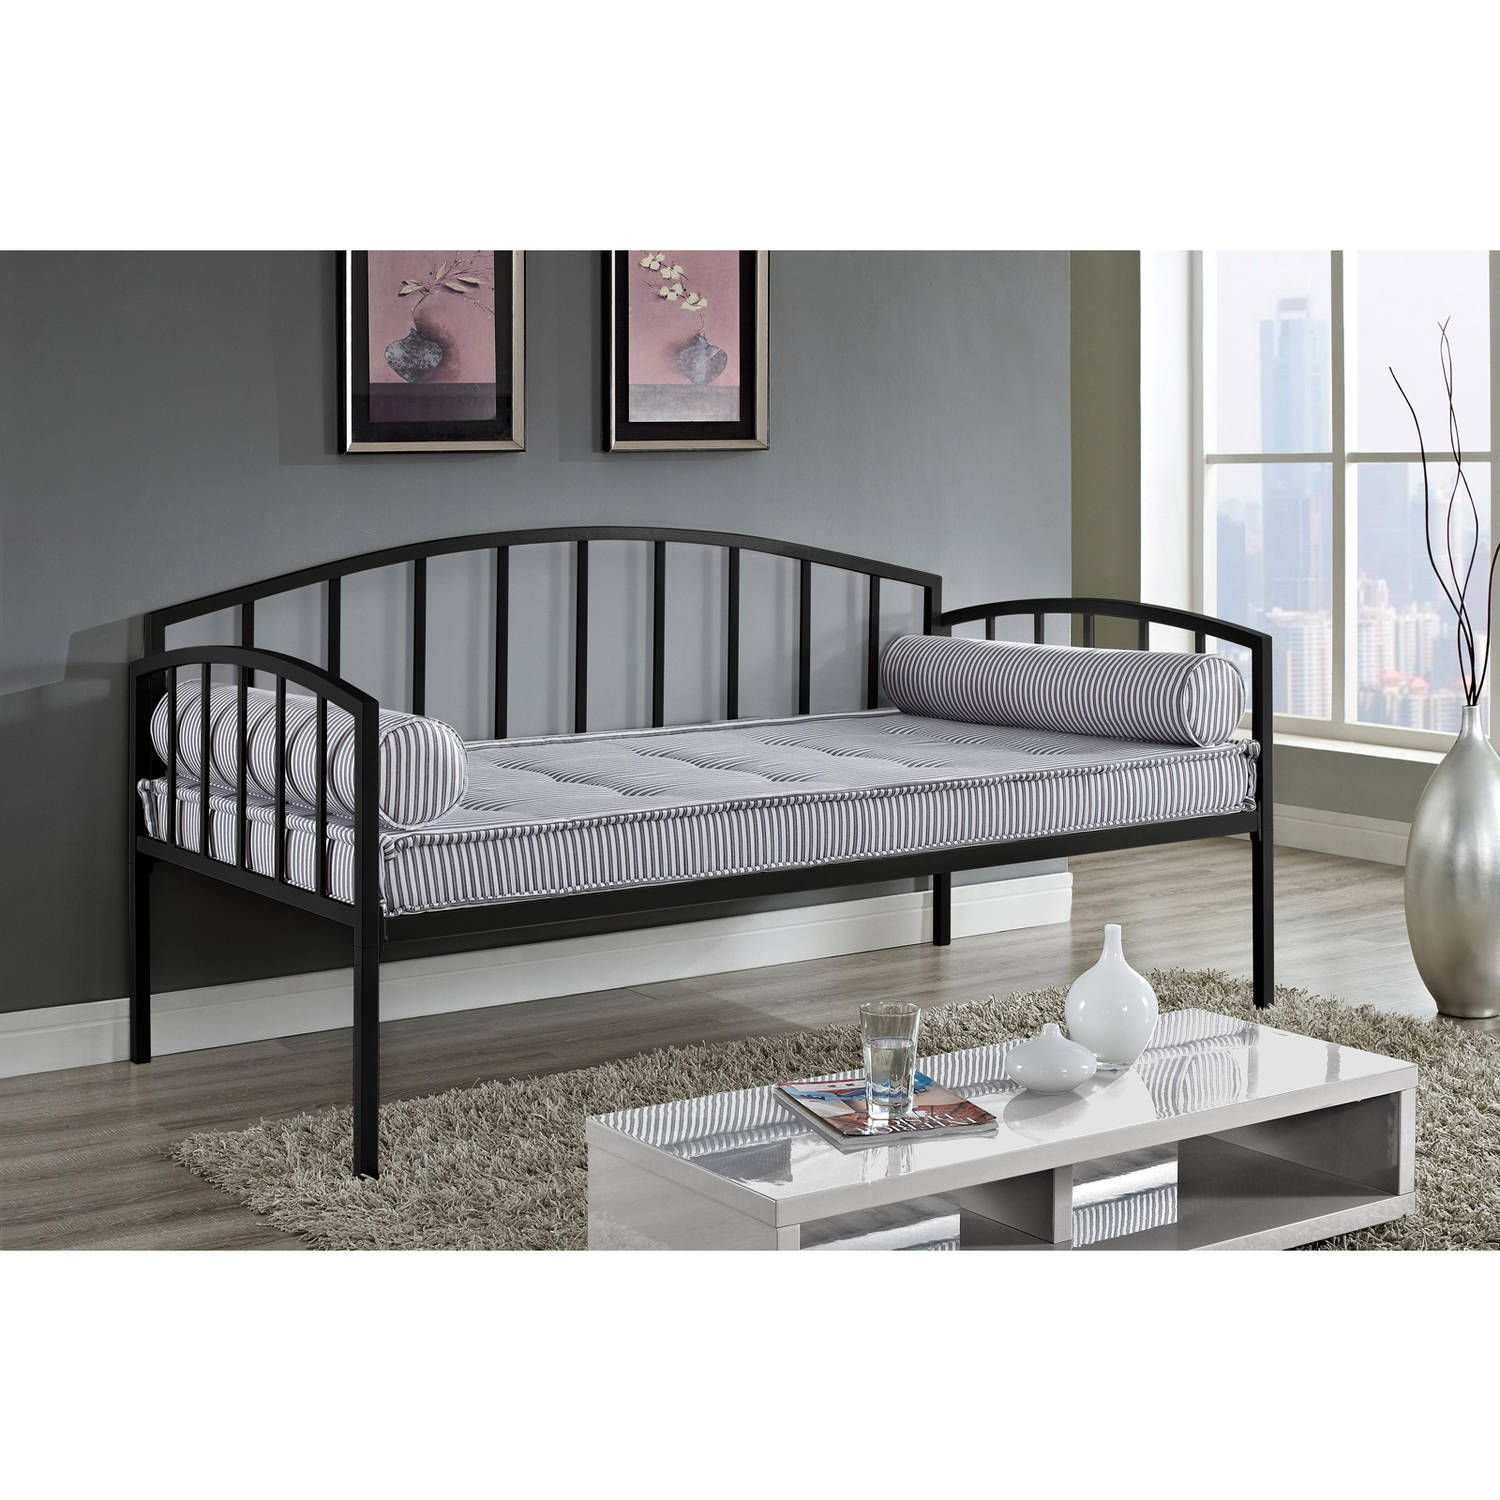 Ava Metal Day Bed, Multiple Colors by Dorel Home Products